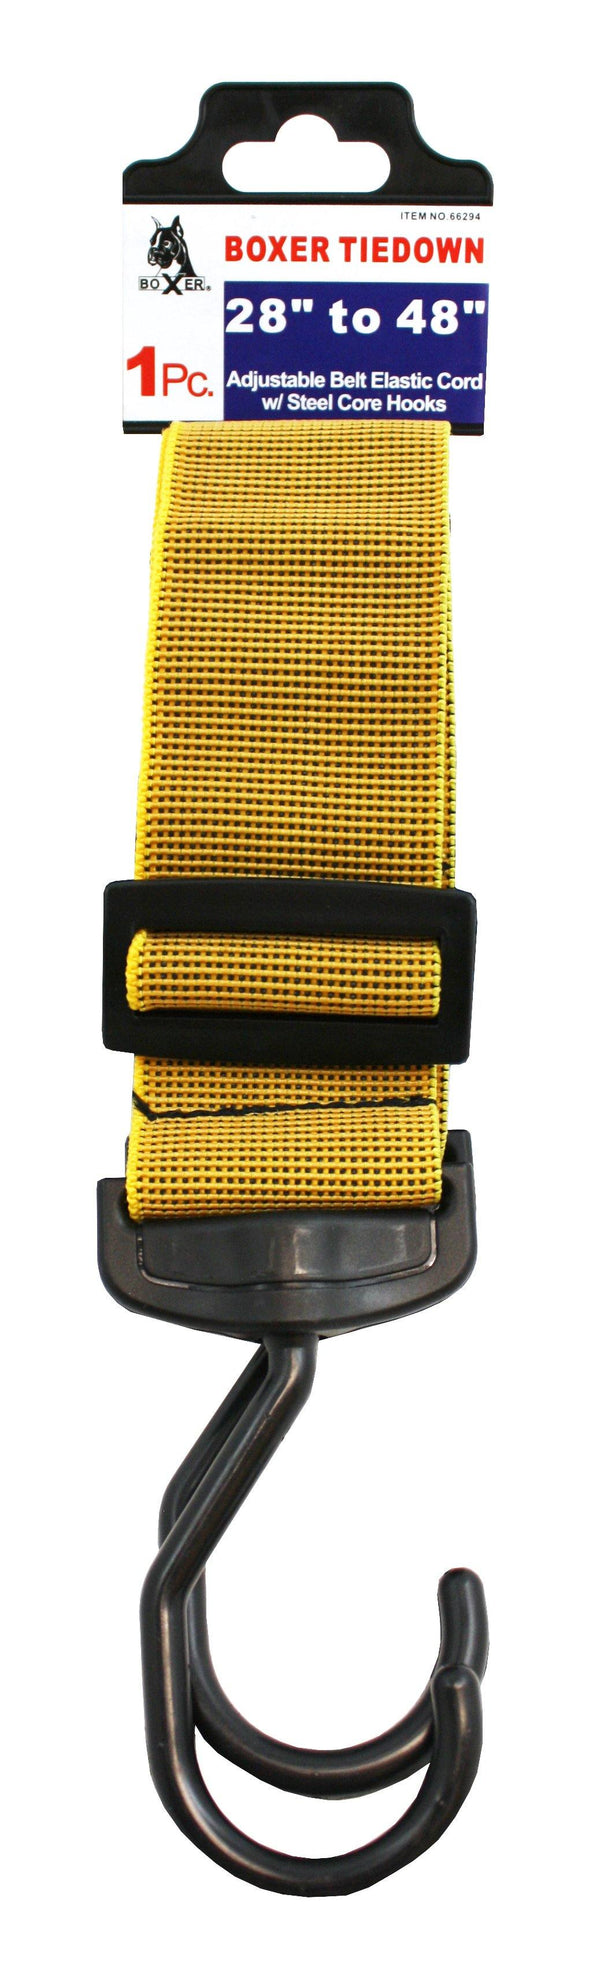 2 Inch Adjustable Belt Elastic Cord with Steel Core Hooks